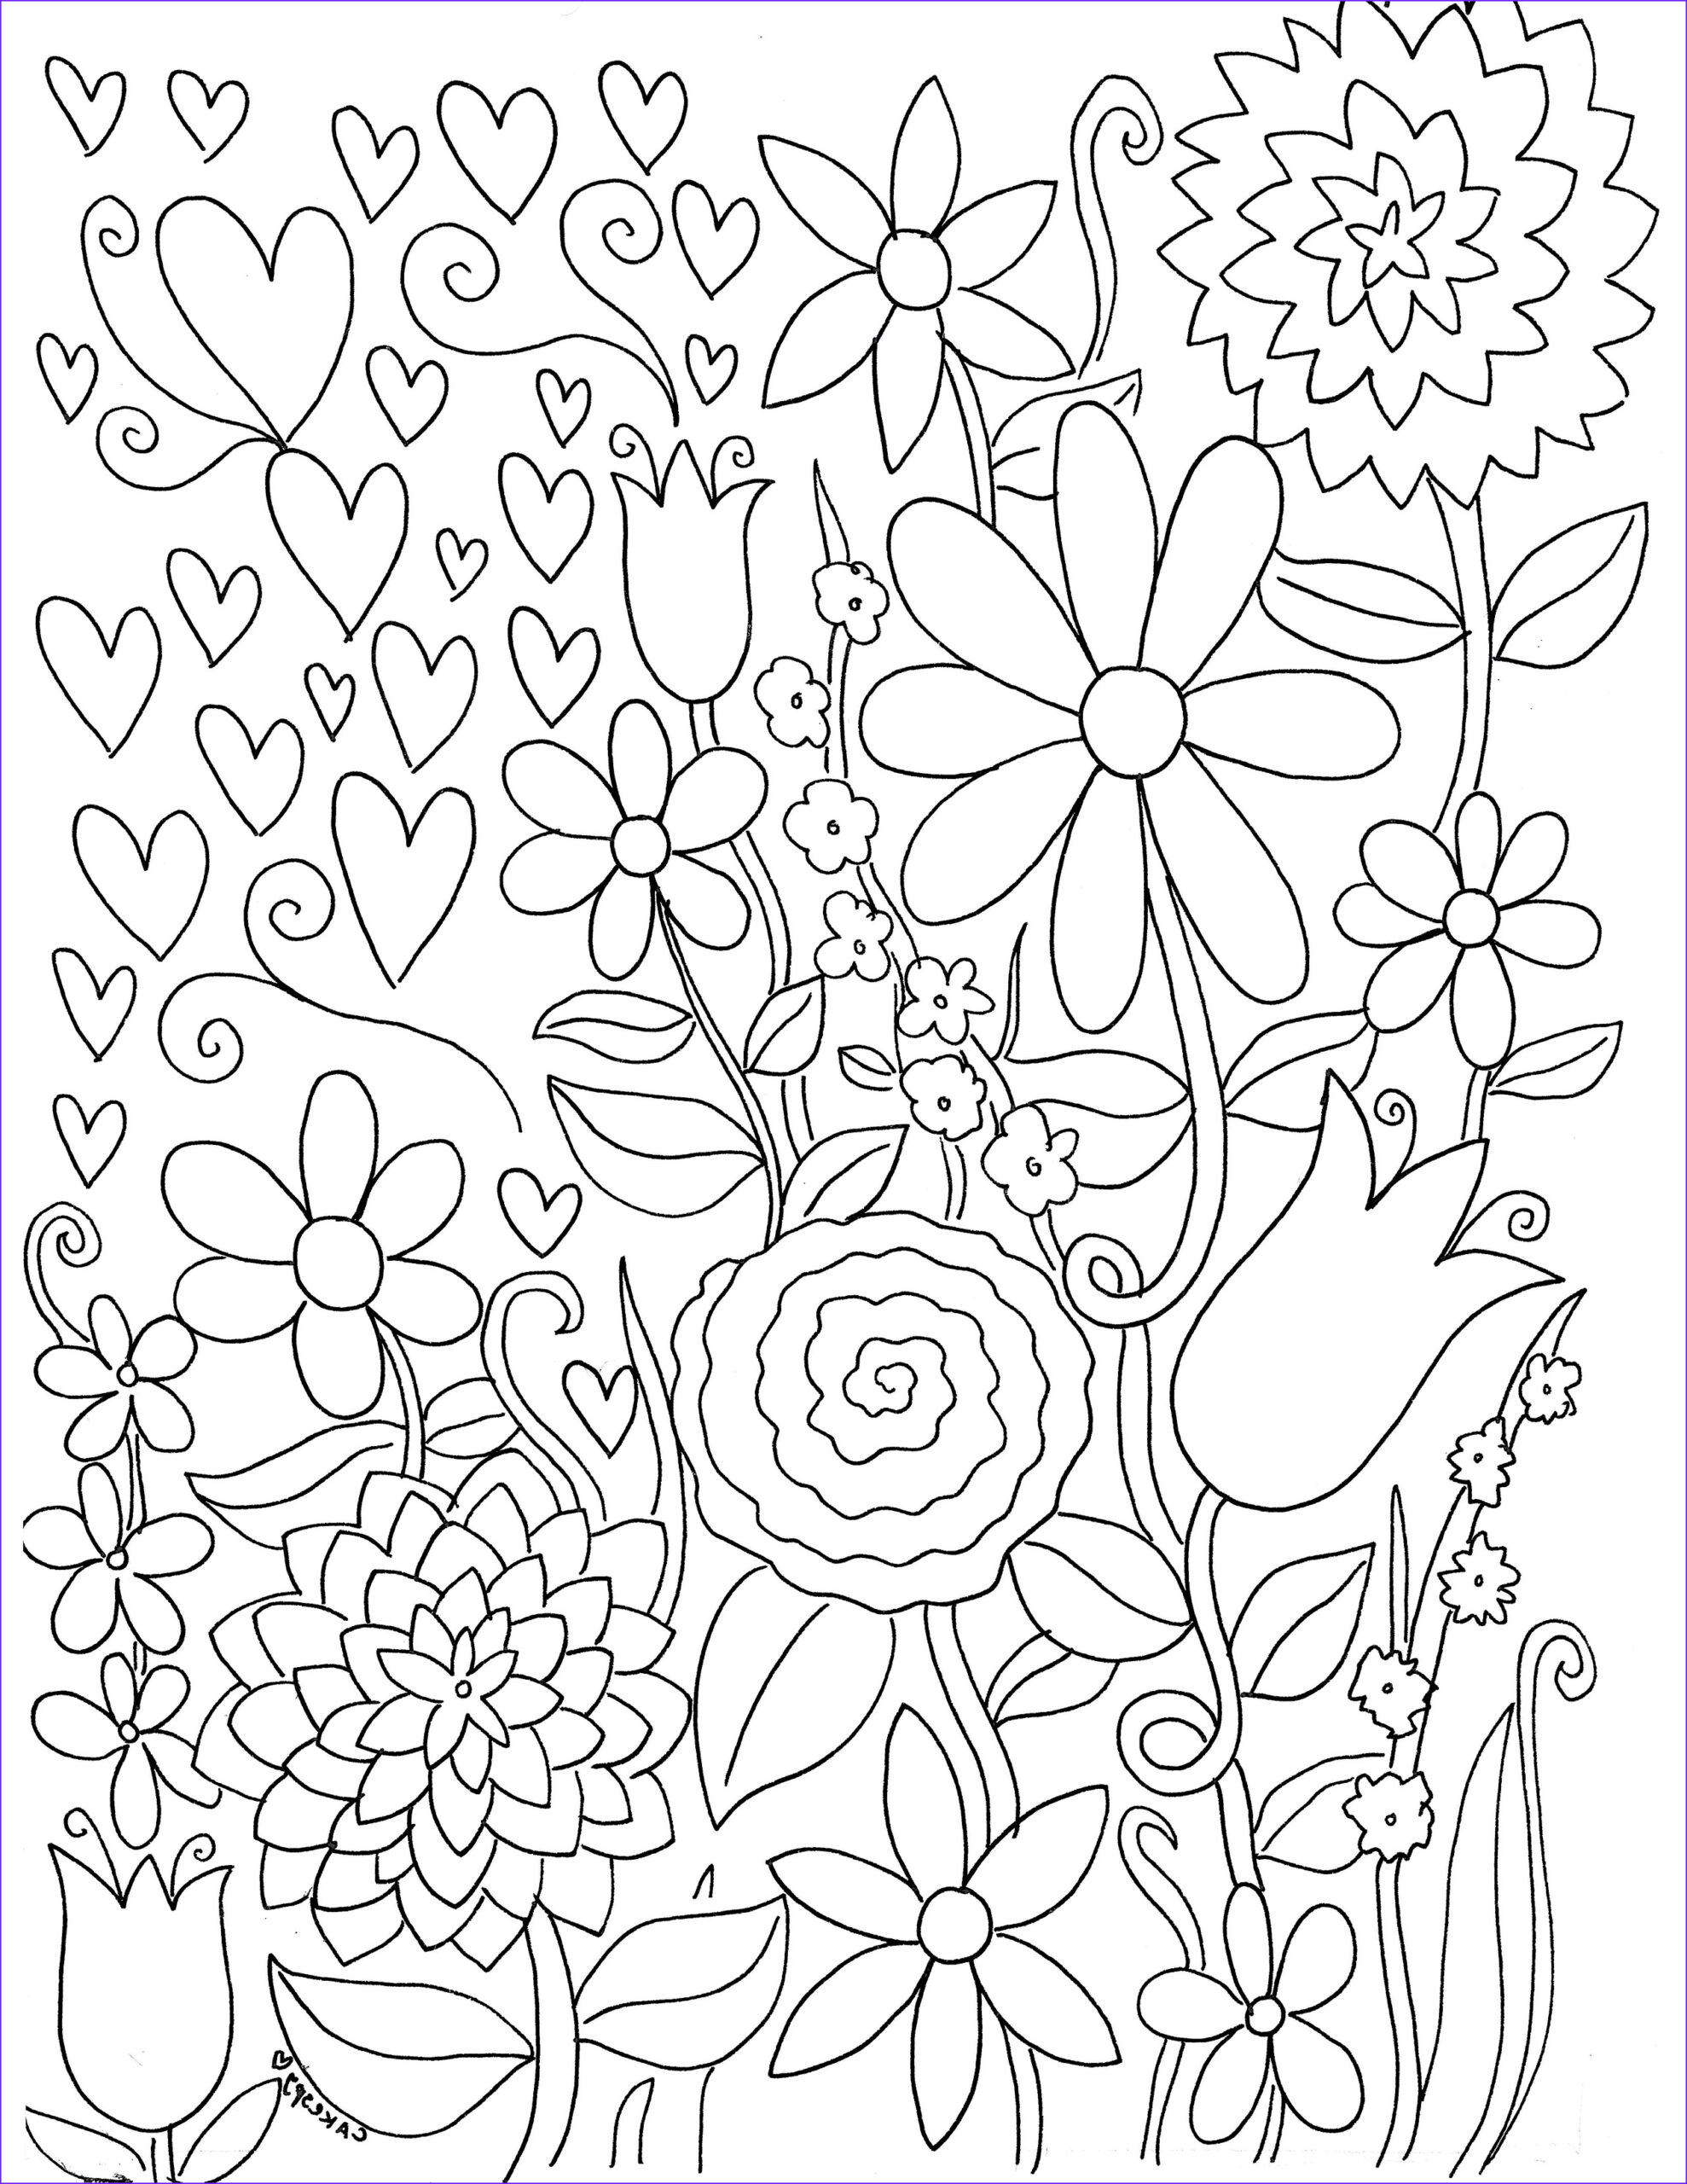 Coloring Book Images Unique Gallery Free Coloring Book Pages for Adults